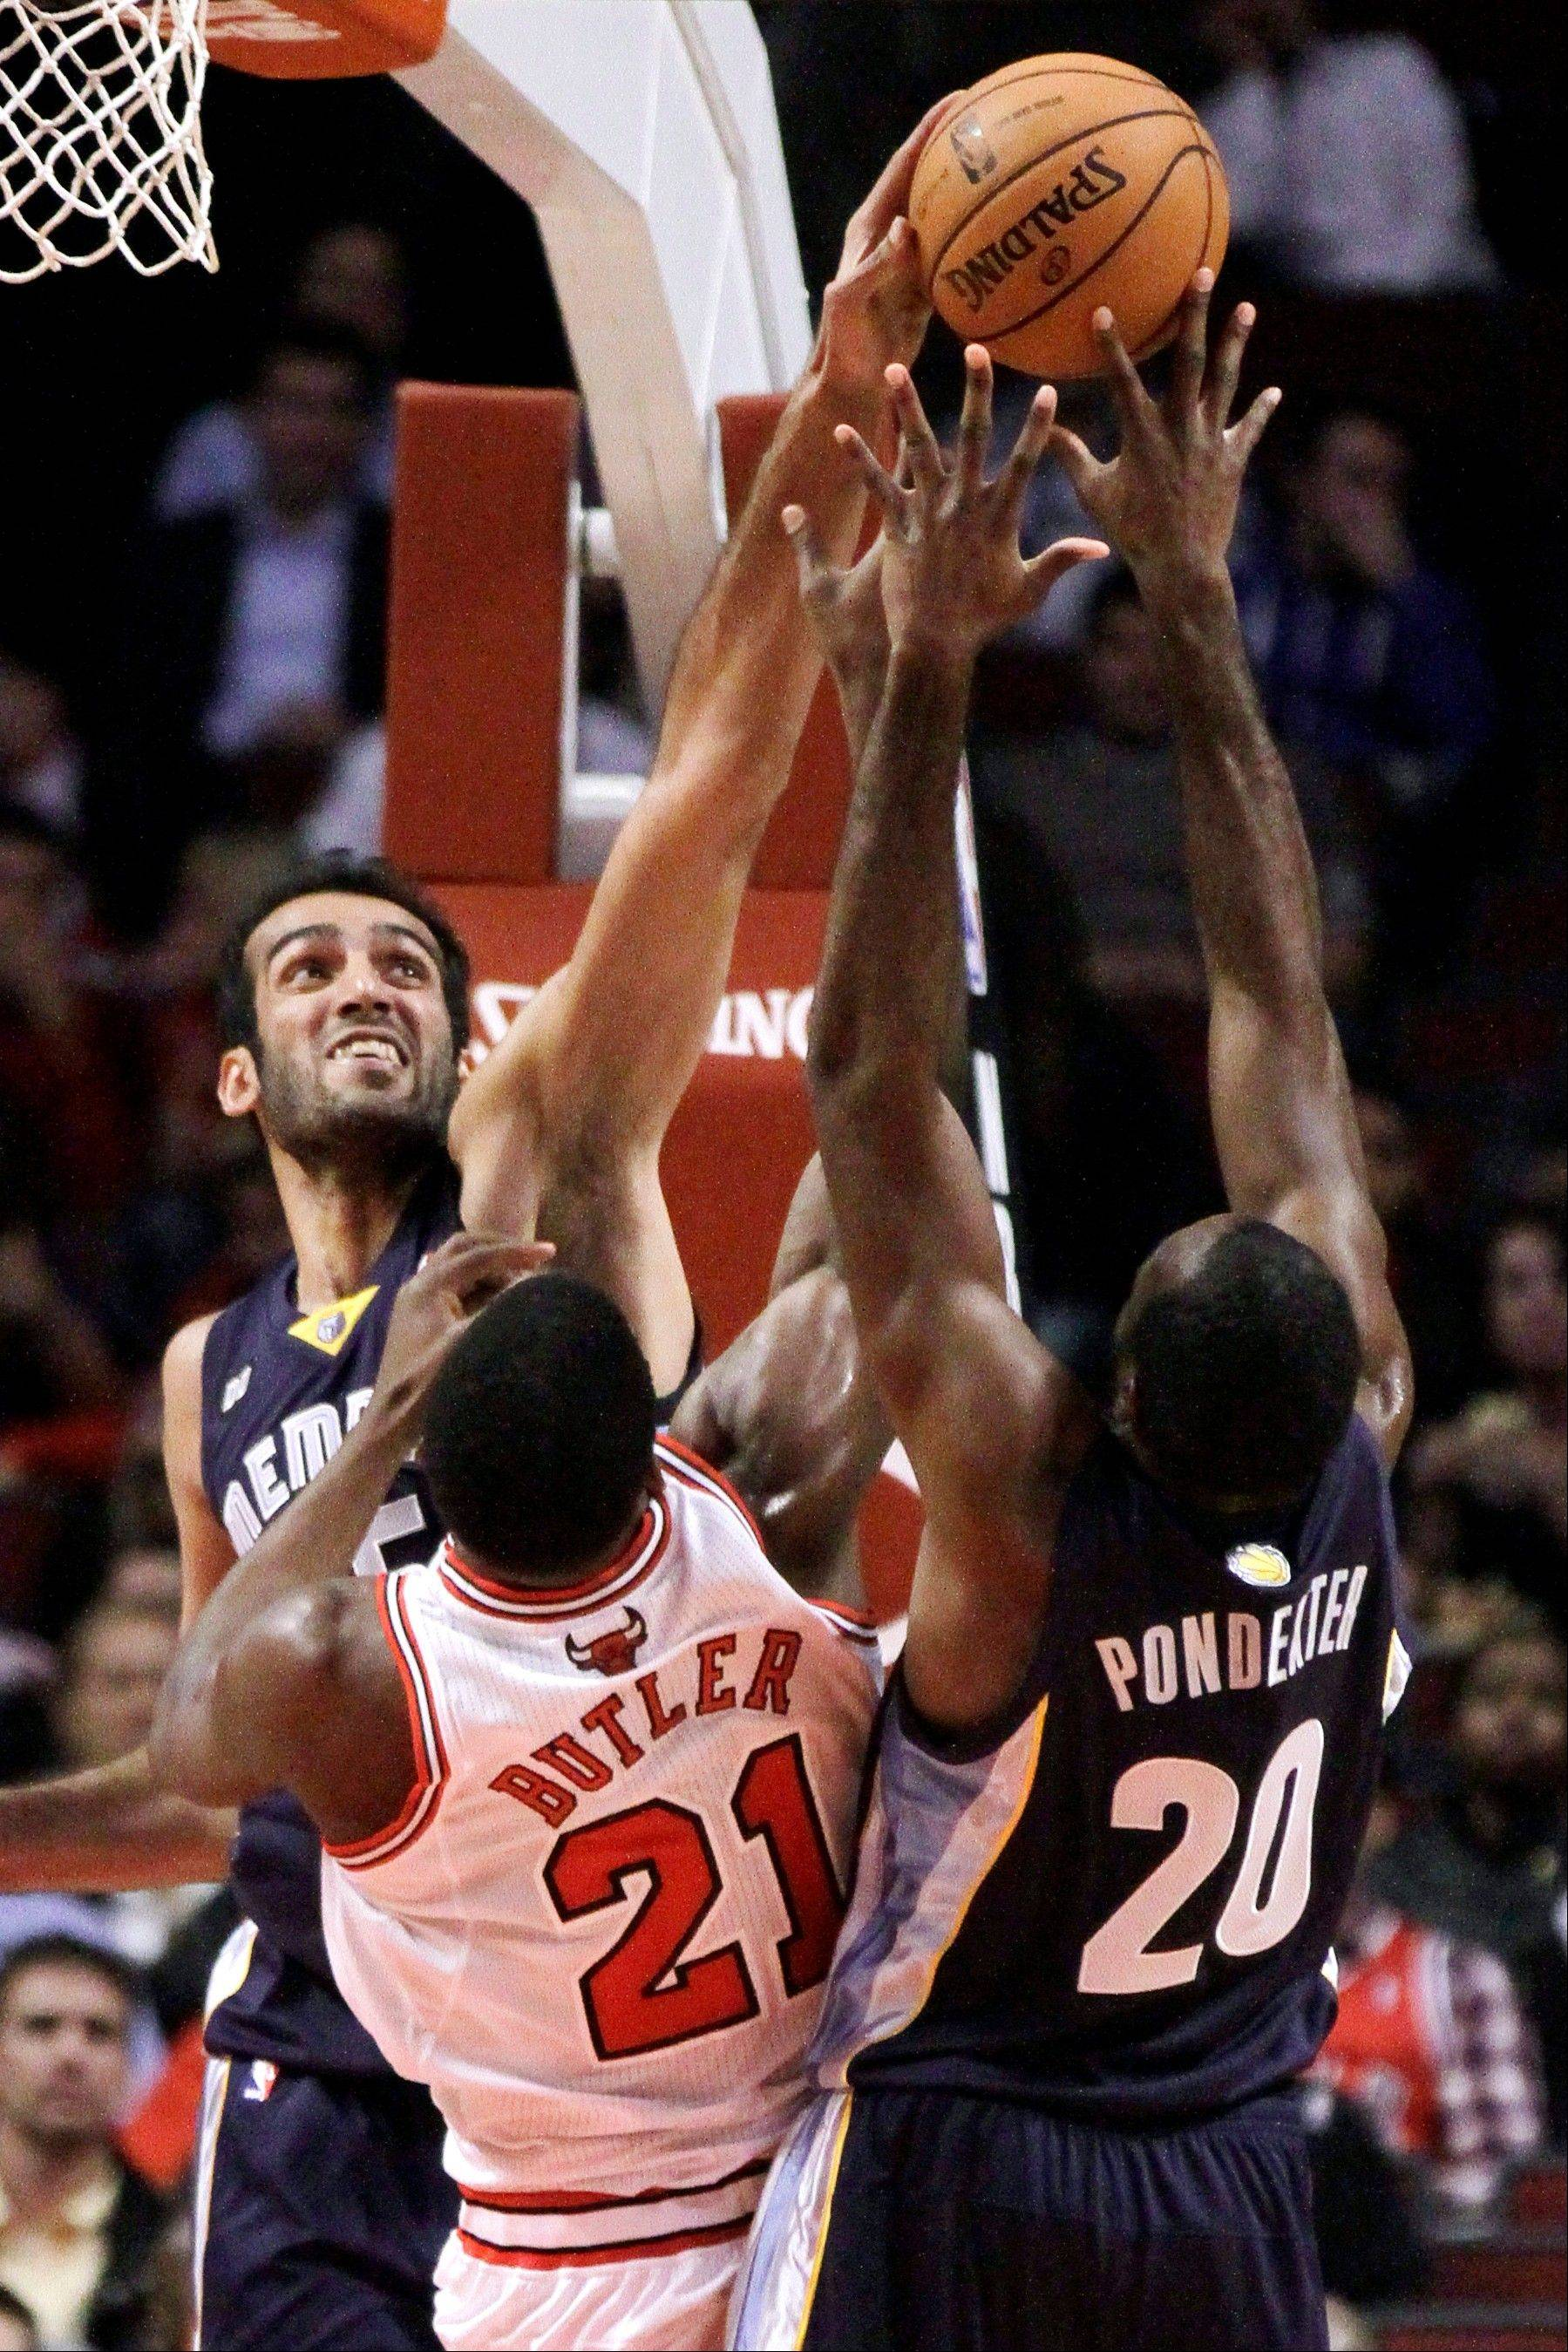 Memphis Grizzlies center Hamed Haddadi, left, blocks the shot of Chicago Bulls guard Jimmy Butler (21) as Grizzlies' Quincy Pondexter (20) defends during the first half of a preseason NBA basketball game, Tuesday, Oct. 9, 2012, in Chicago.